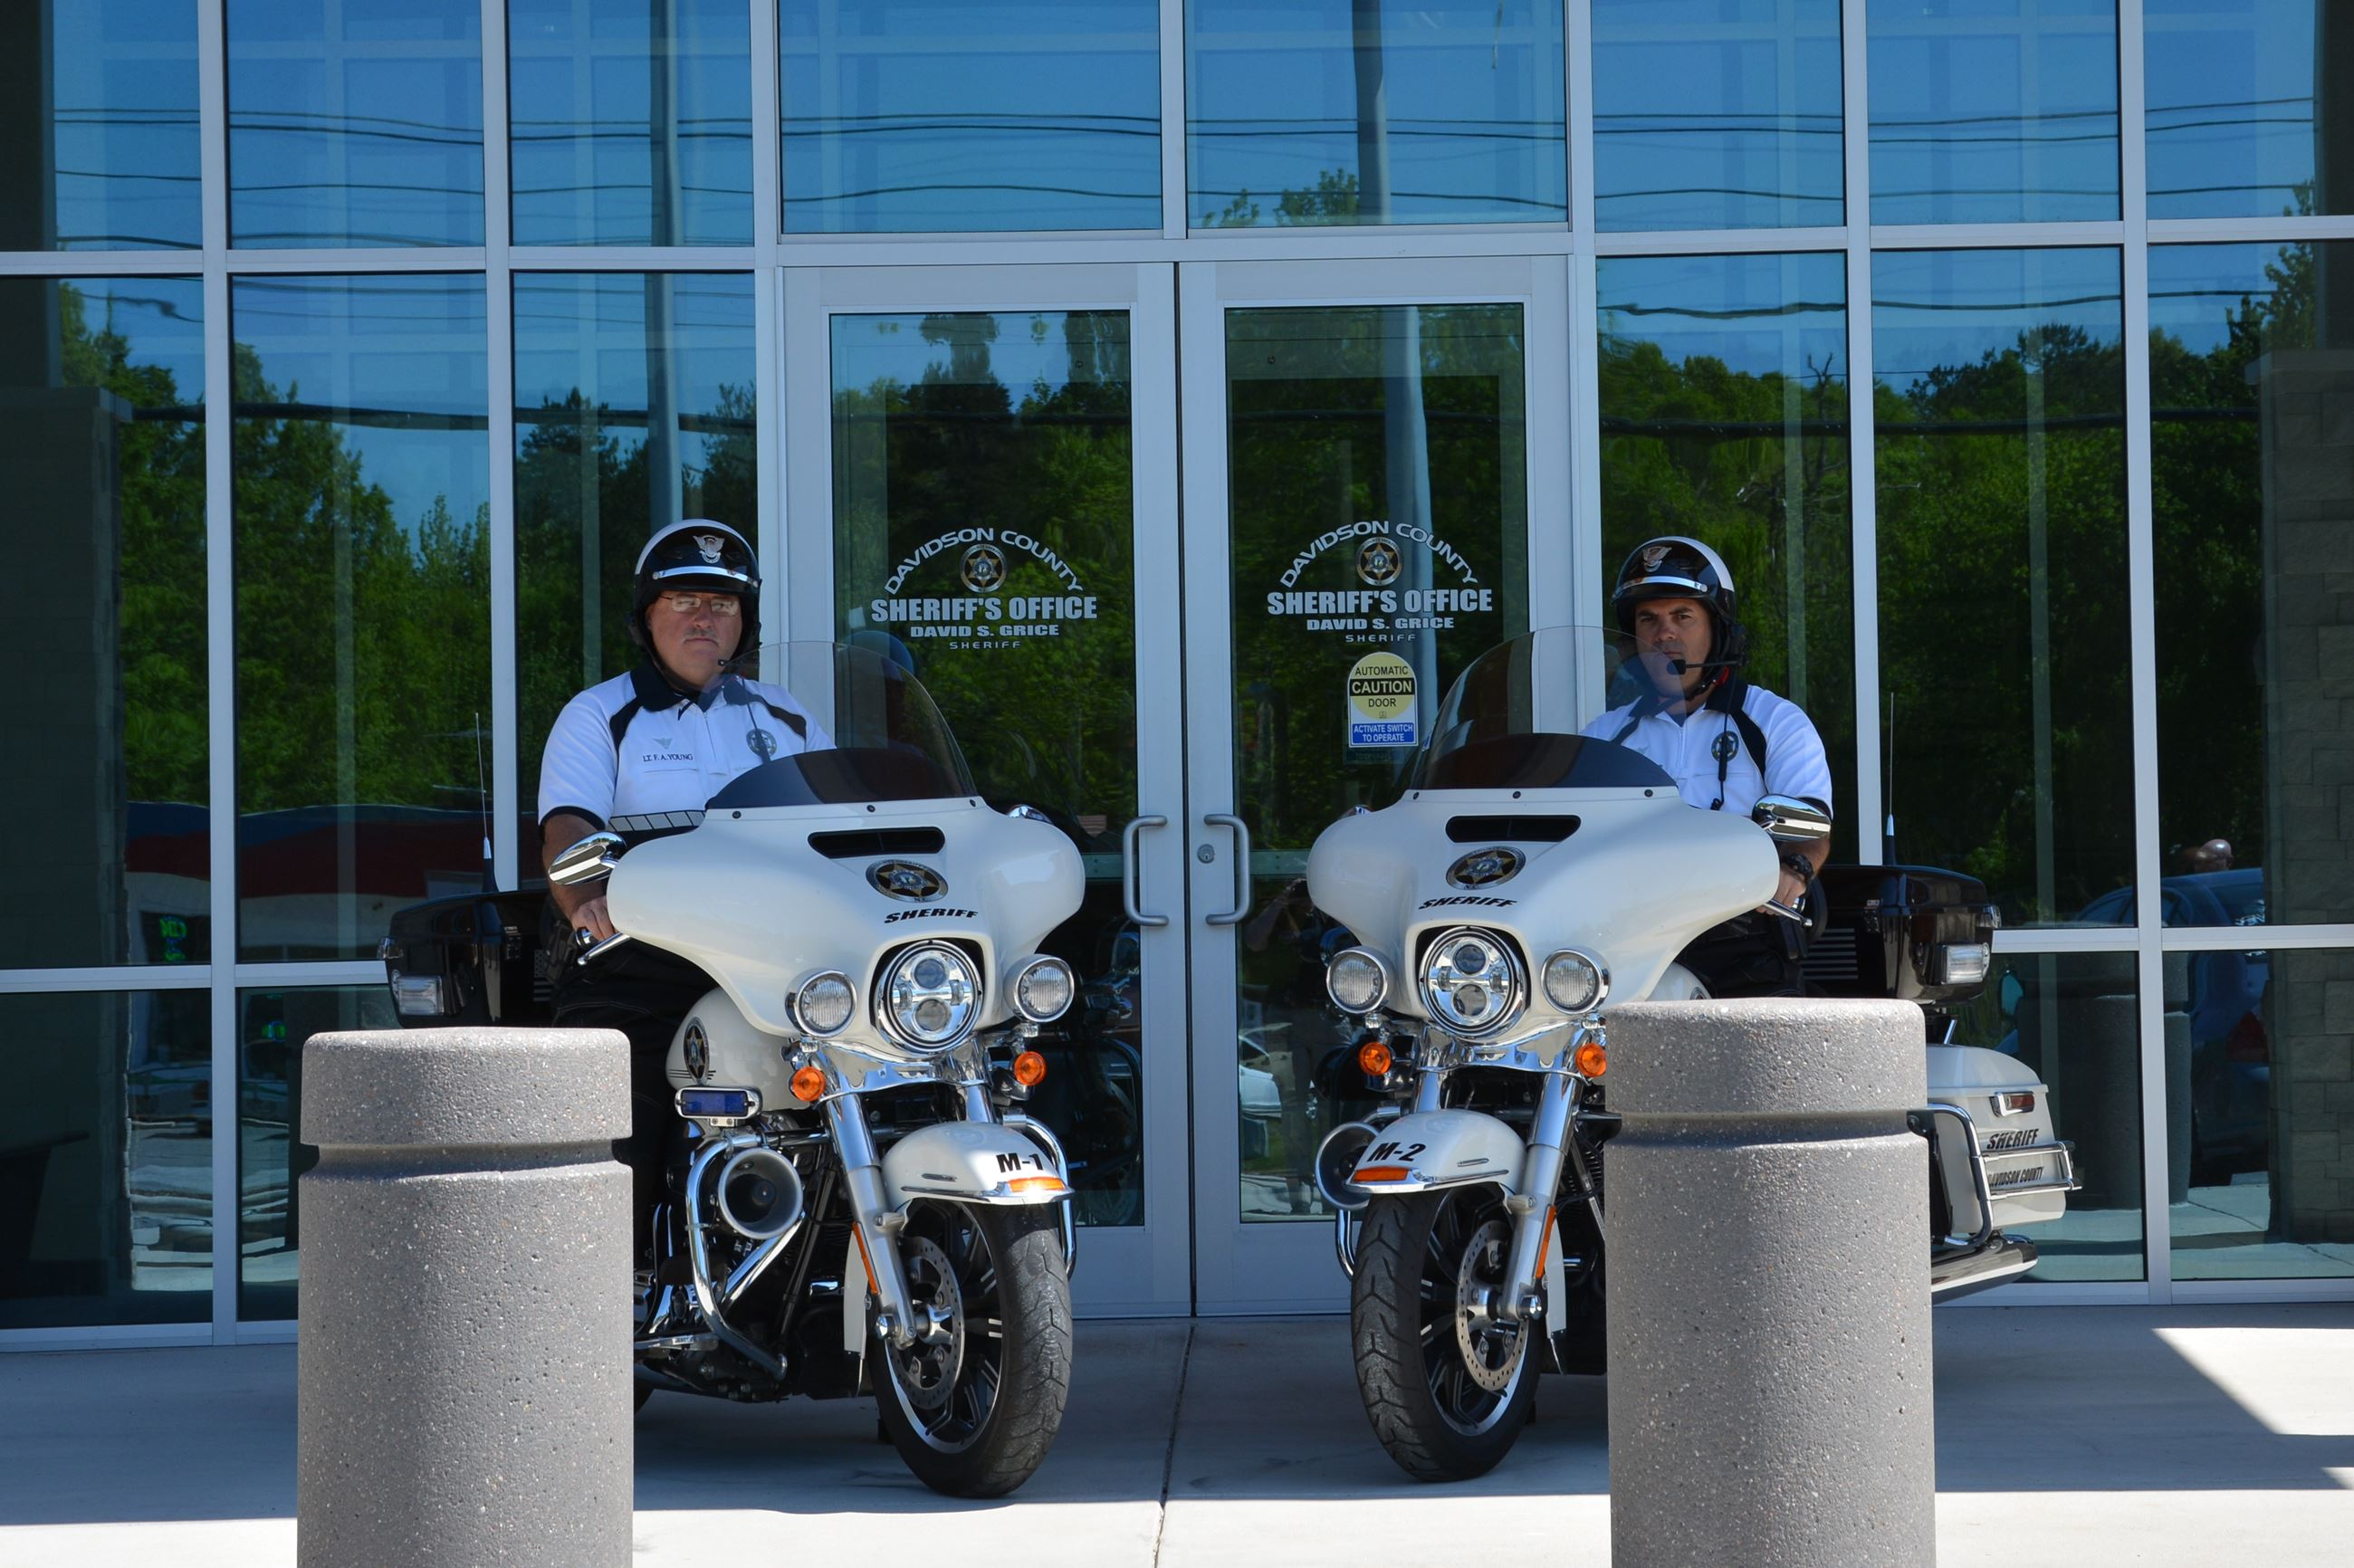 Lt. Young and Capt. Miller on the Harley Davidson Police Motorcycles